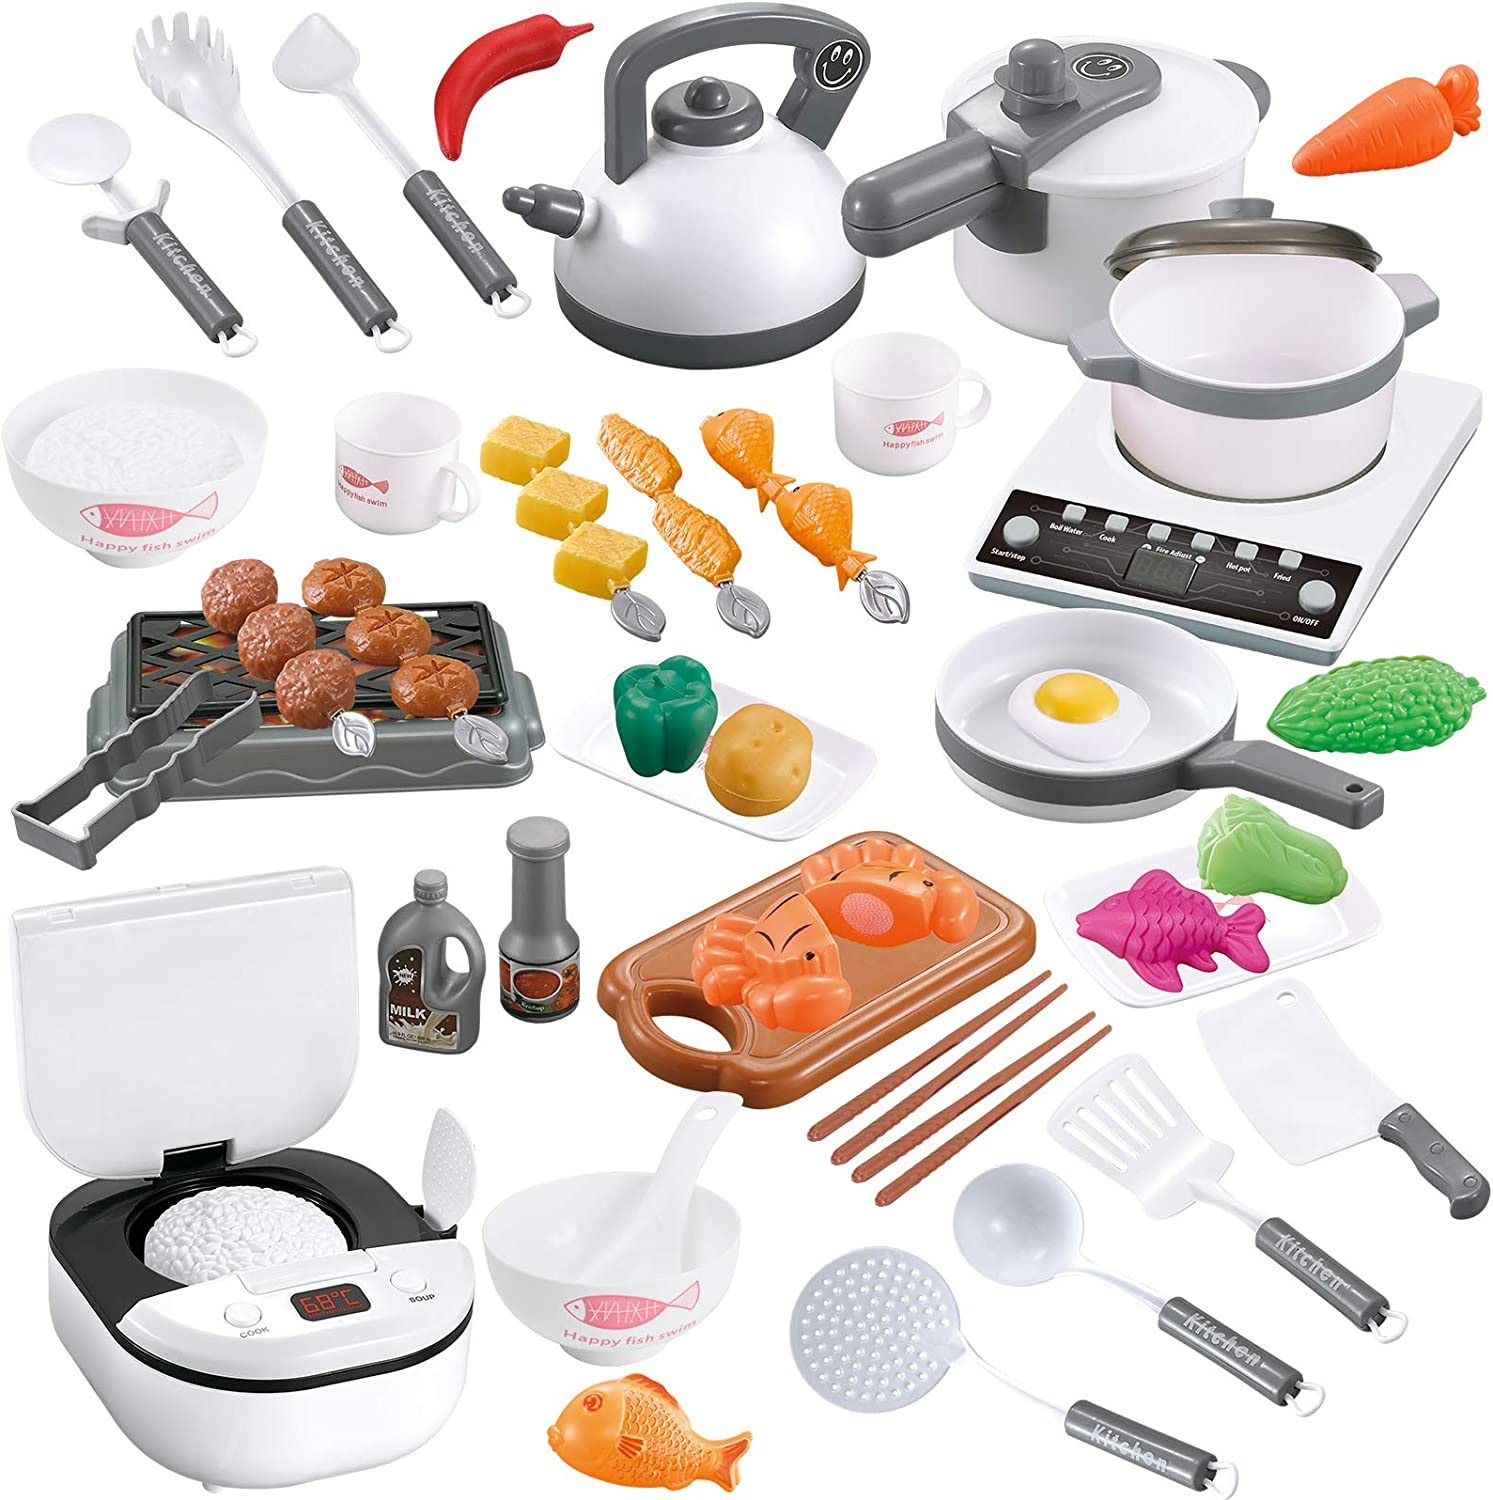 TIKTOK 59 PCS Pretend Play Toy Kitchen Set, Toy Food Cookware Playset Steam Pressure Pot and Electric Induction Cooktop,Cooking Utensils,Toy Cutlery,Cut Play Food, for Girls Boys Kids White